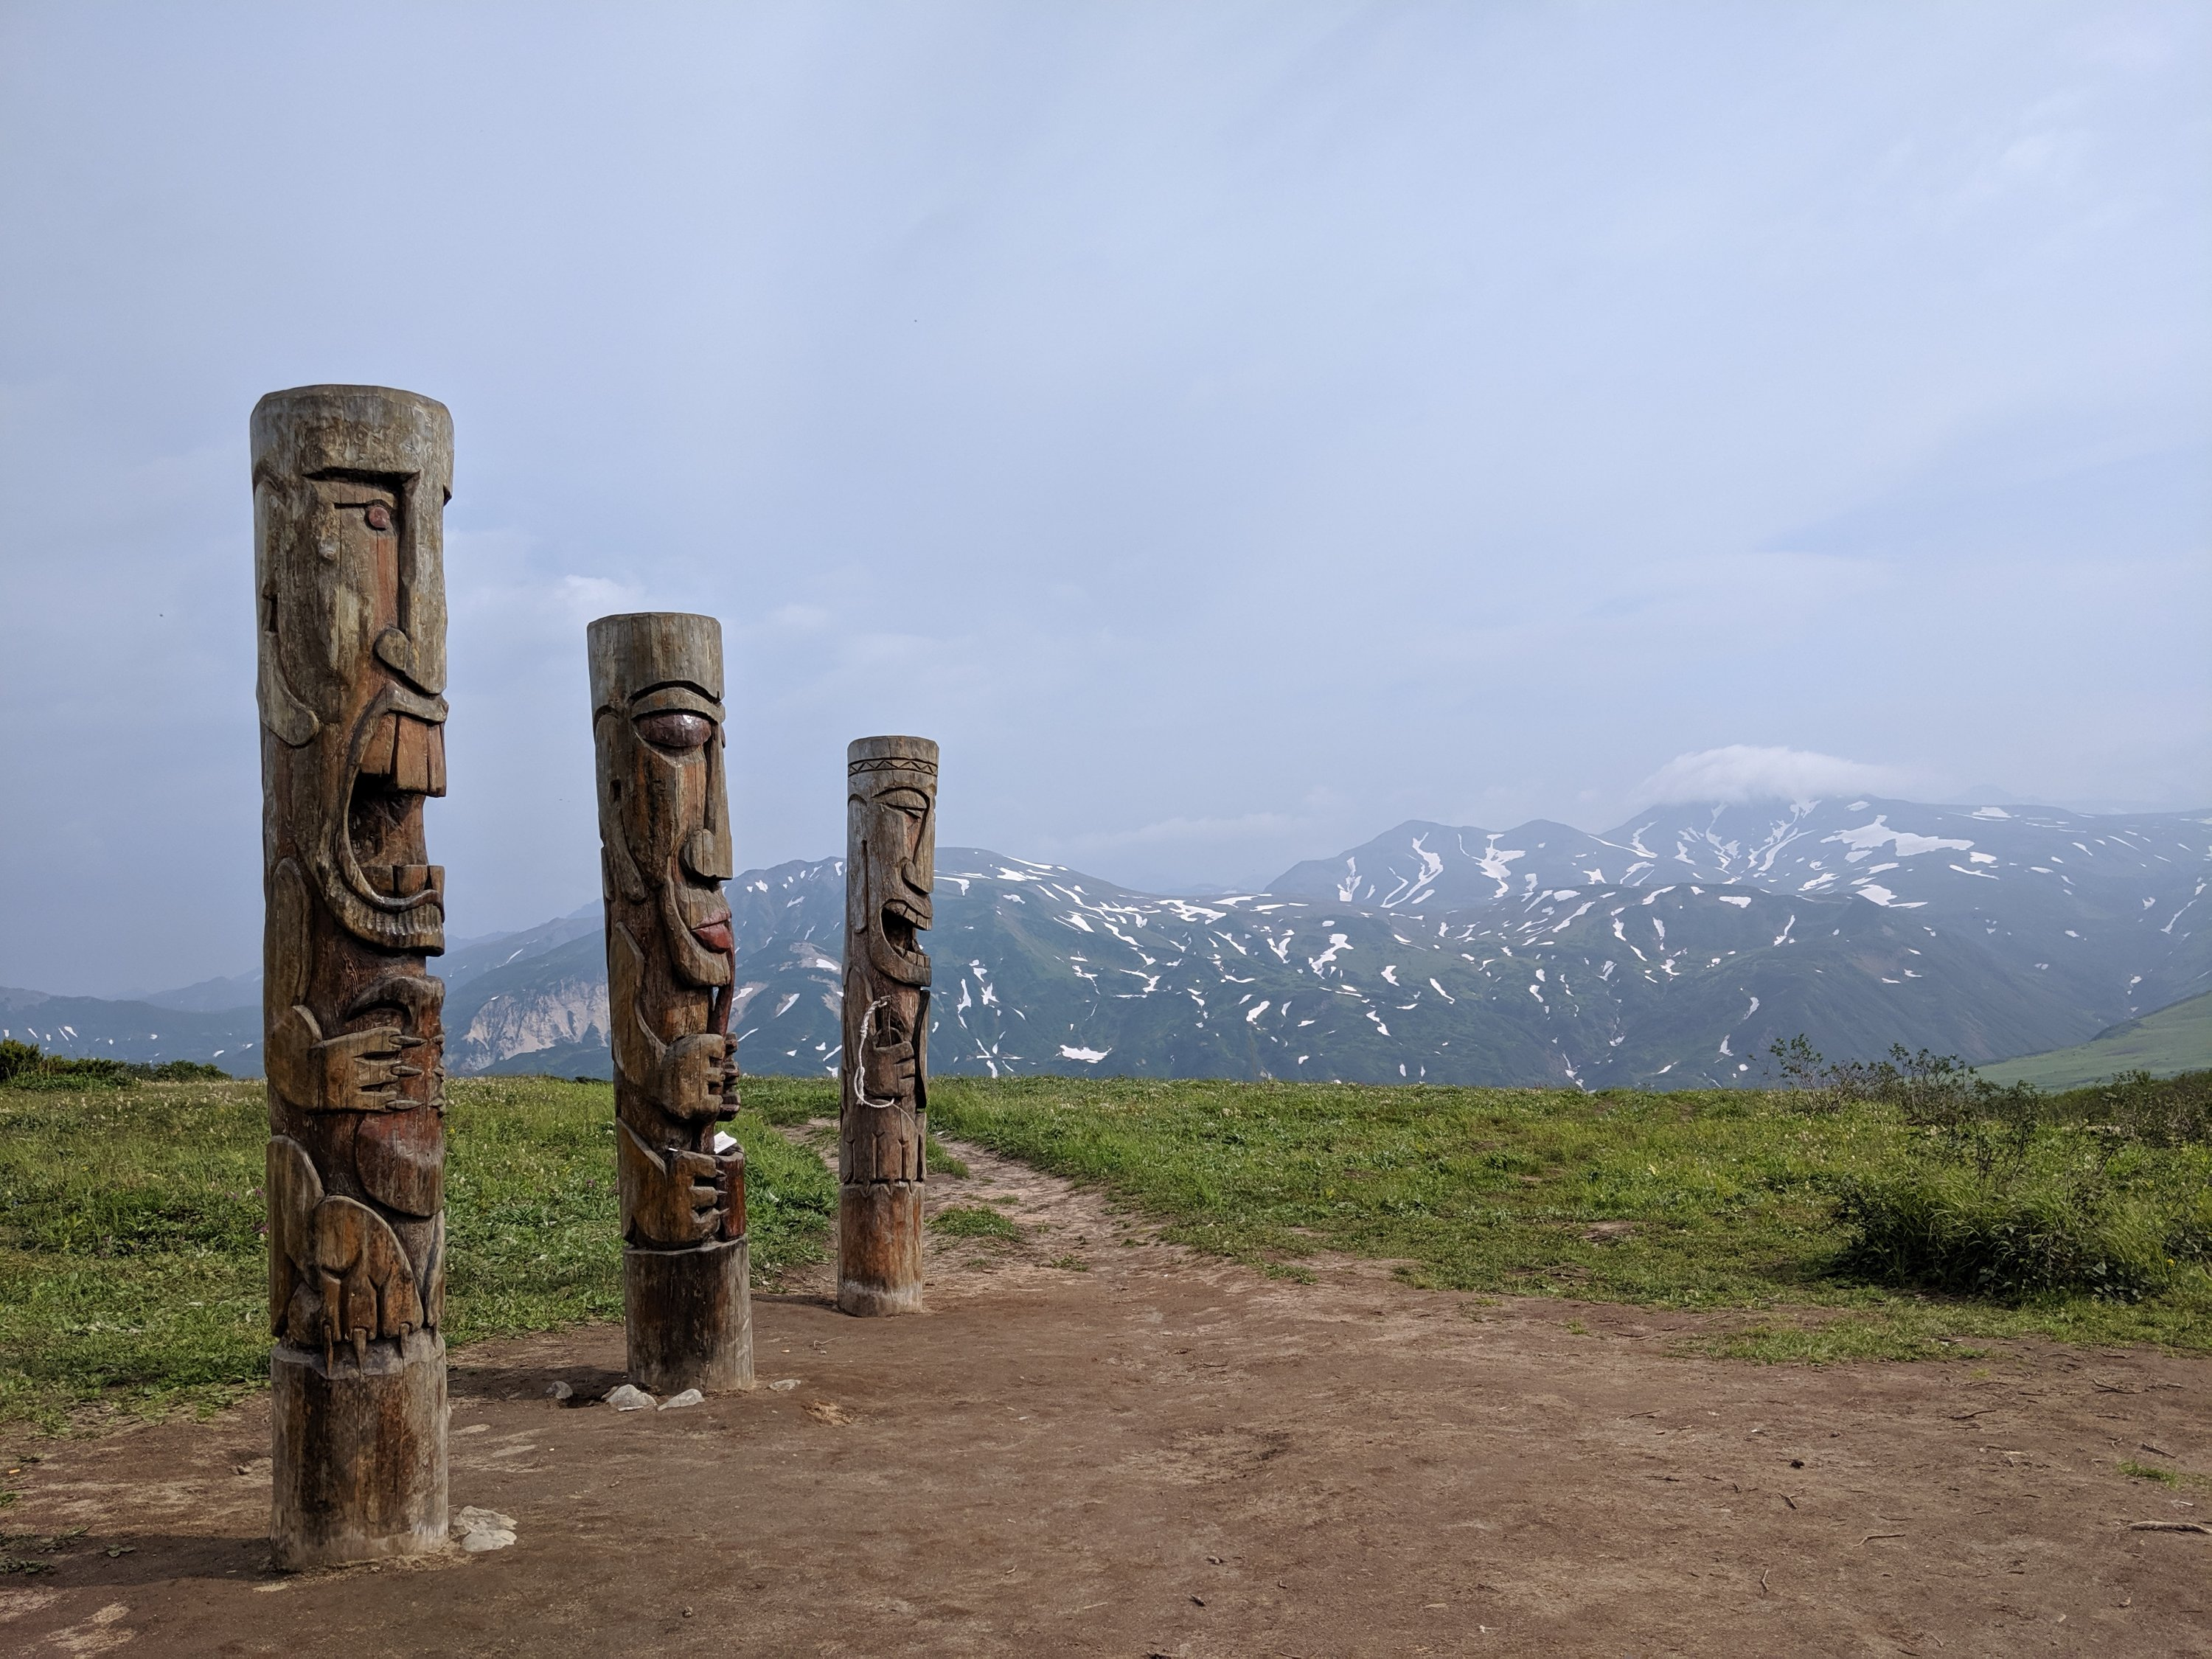 Totem poles at the top of a mountain in Kamchatka, Russia